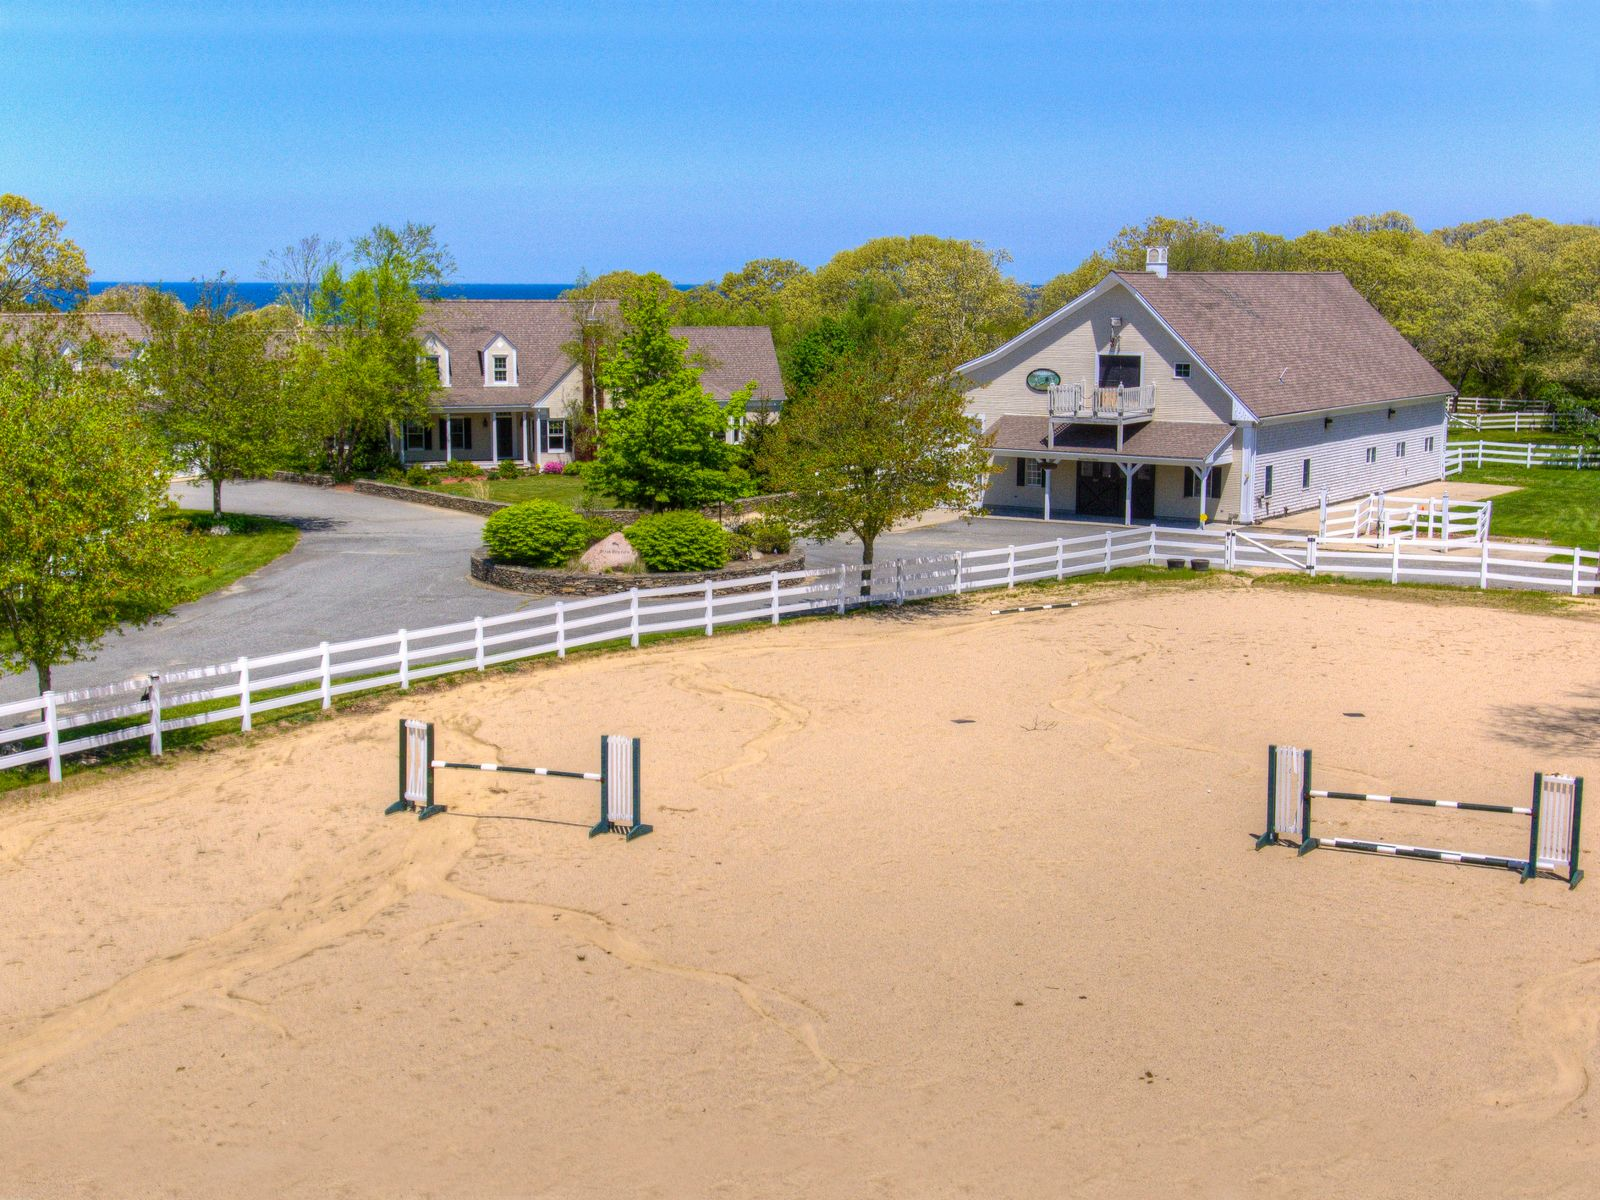 Ocean View Horse Farm, East Sandwich MA Single Family Home - Cape Cod Real Estate